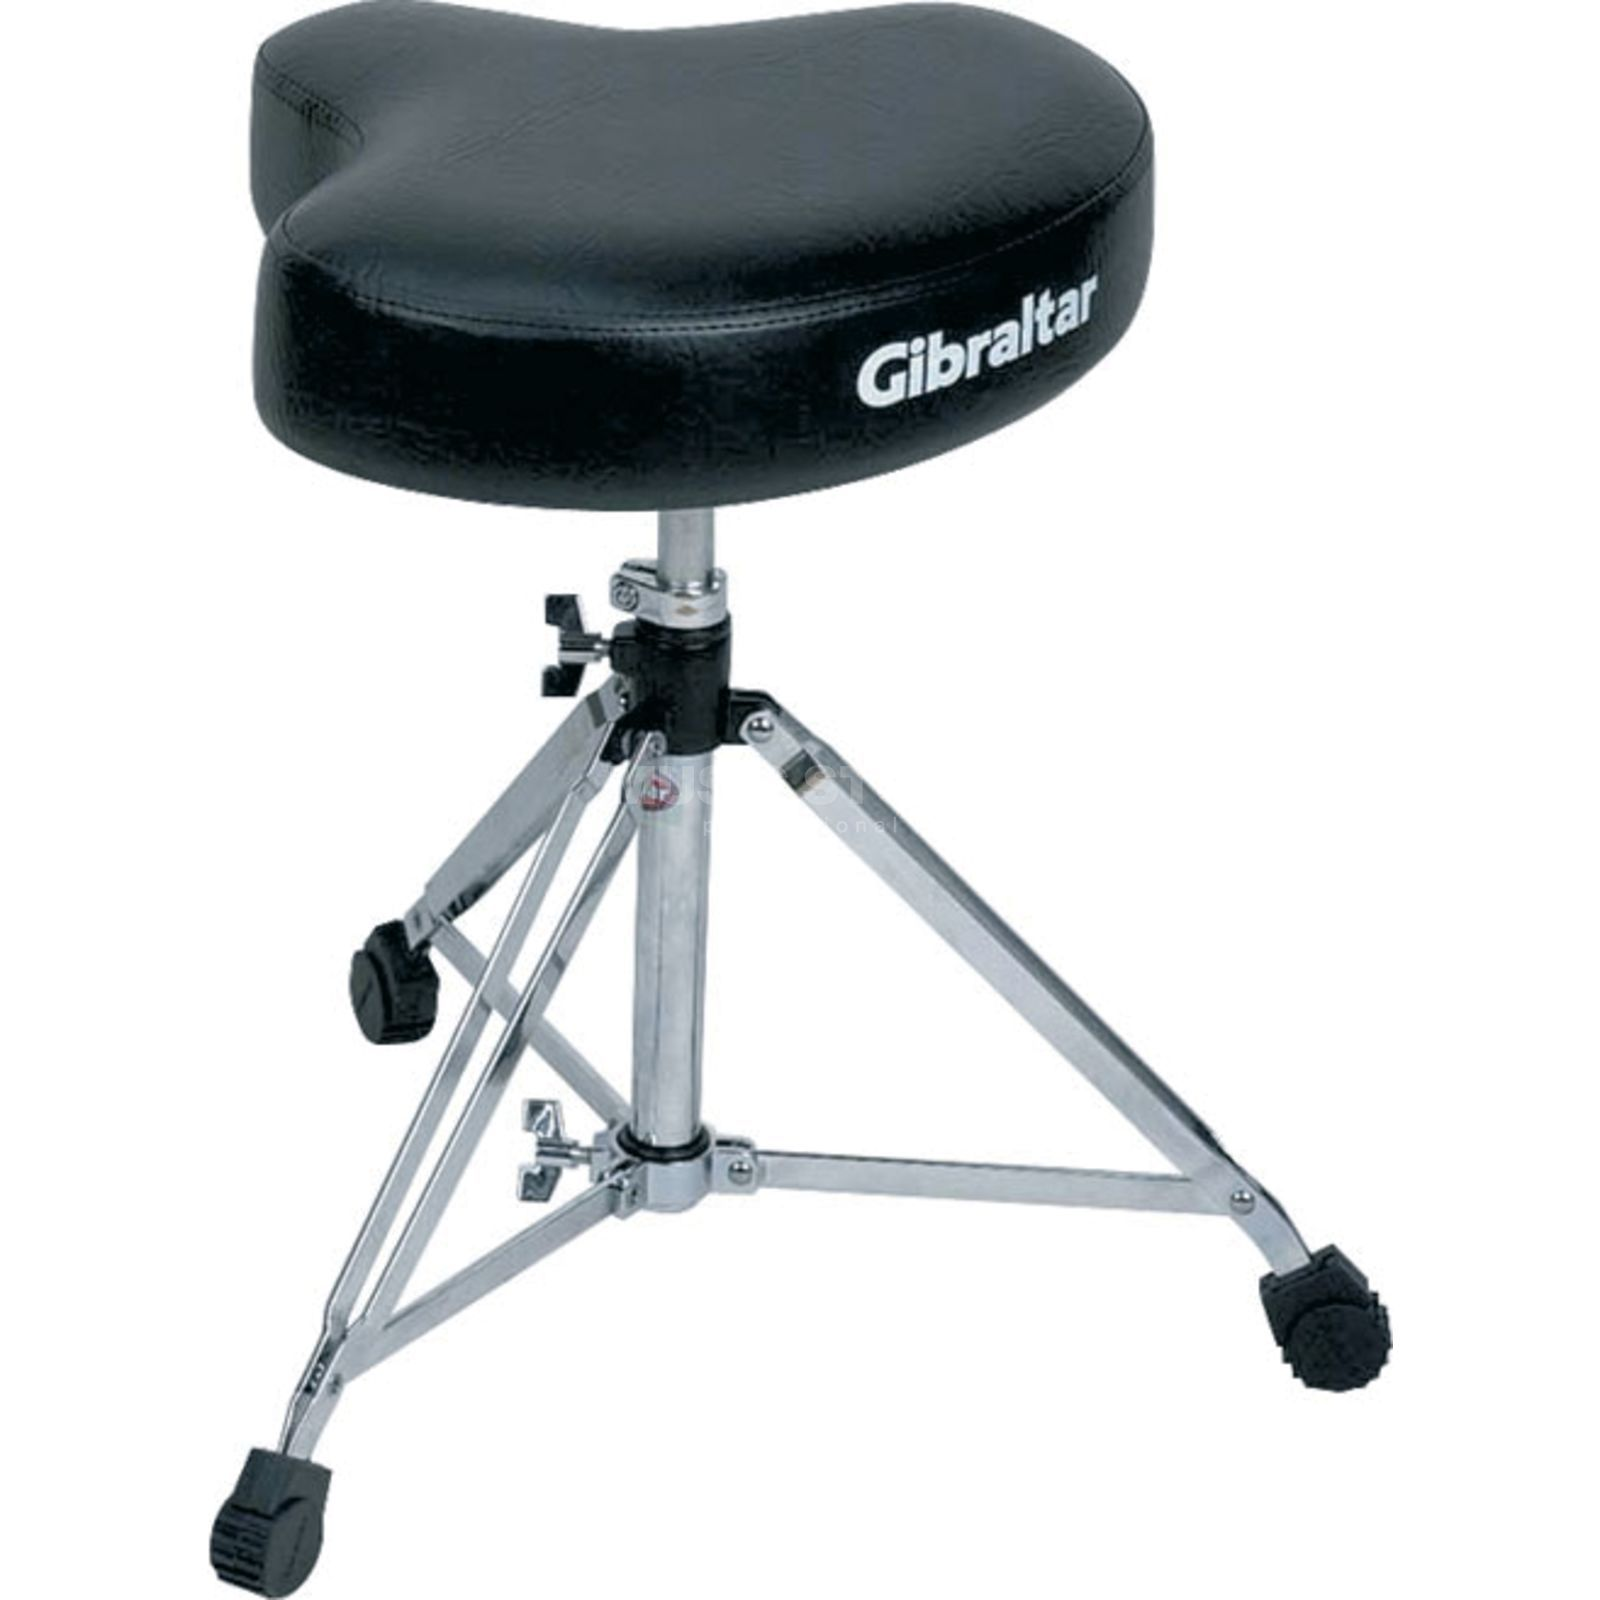 Gibraltar Drum Throne 6608 Изображение товара